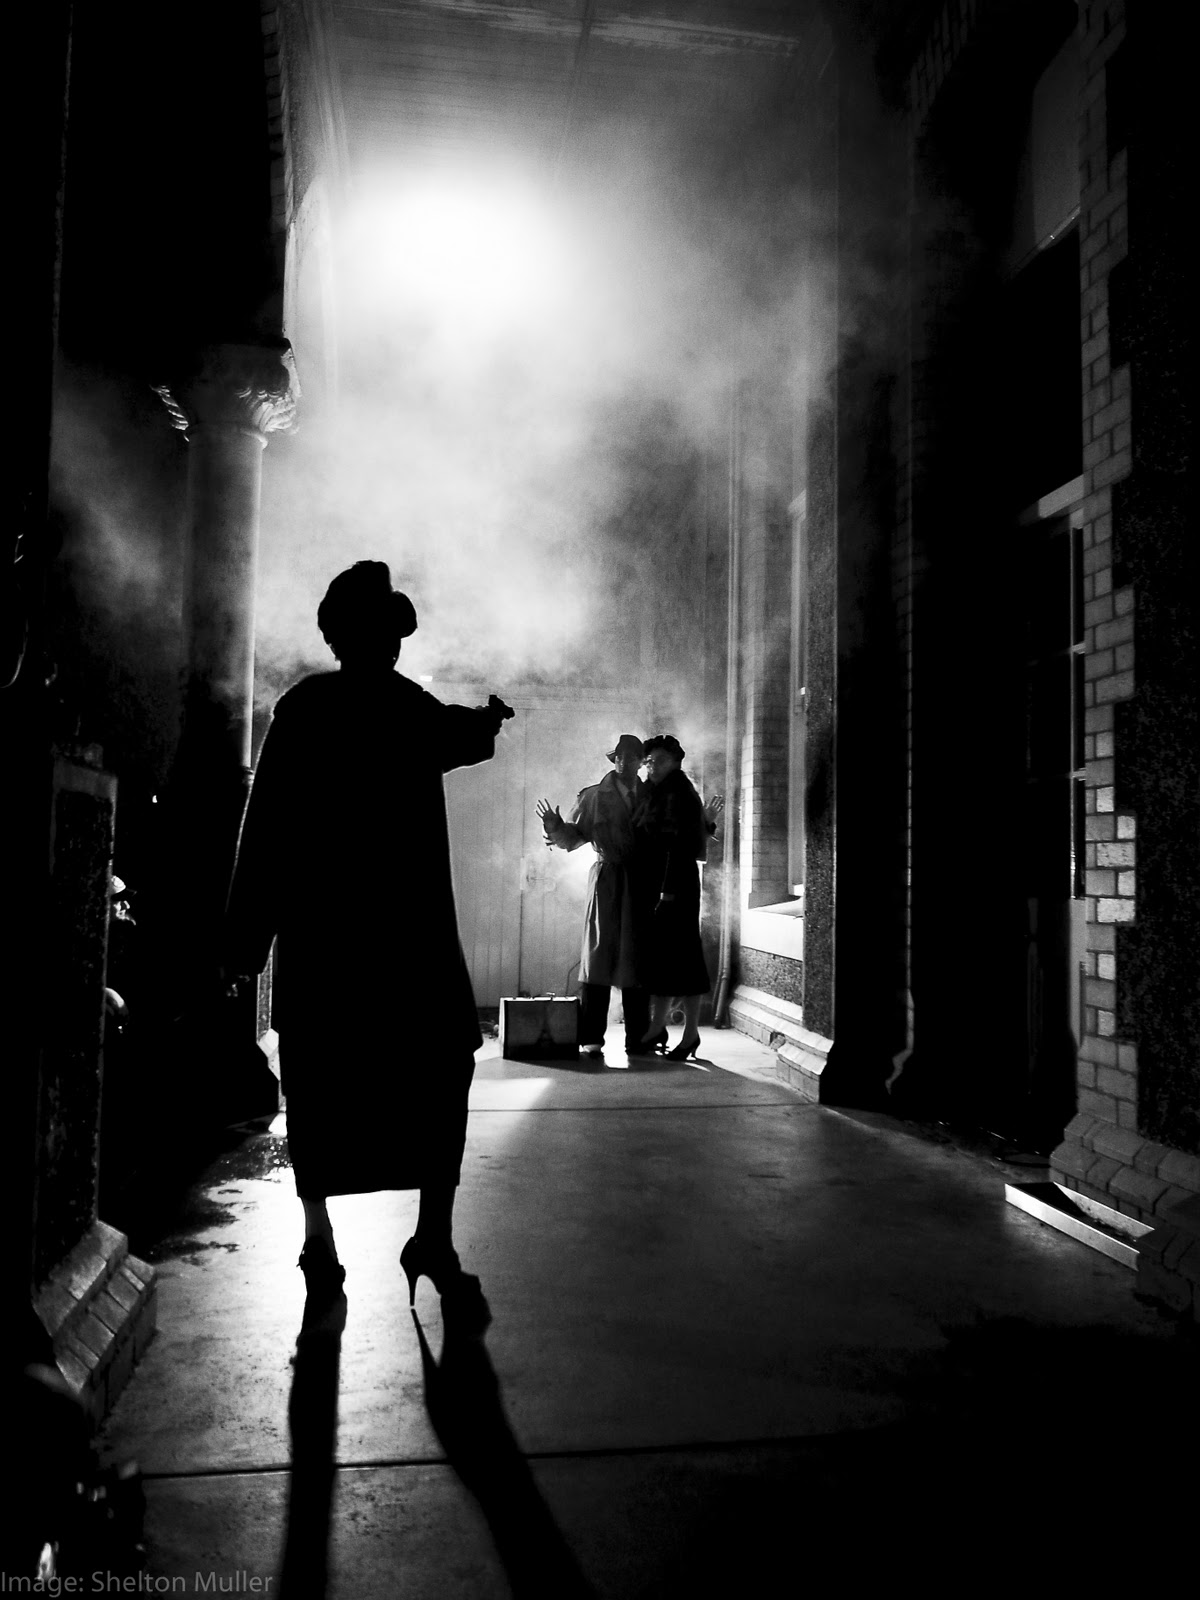 1000 Images About Film Noir On Pinterest Film Noir Film Noir Photography And Gangsters